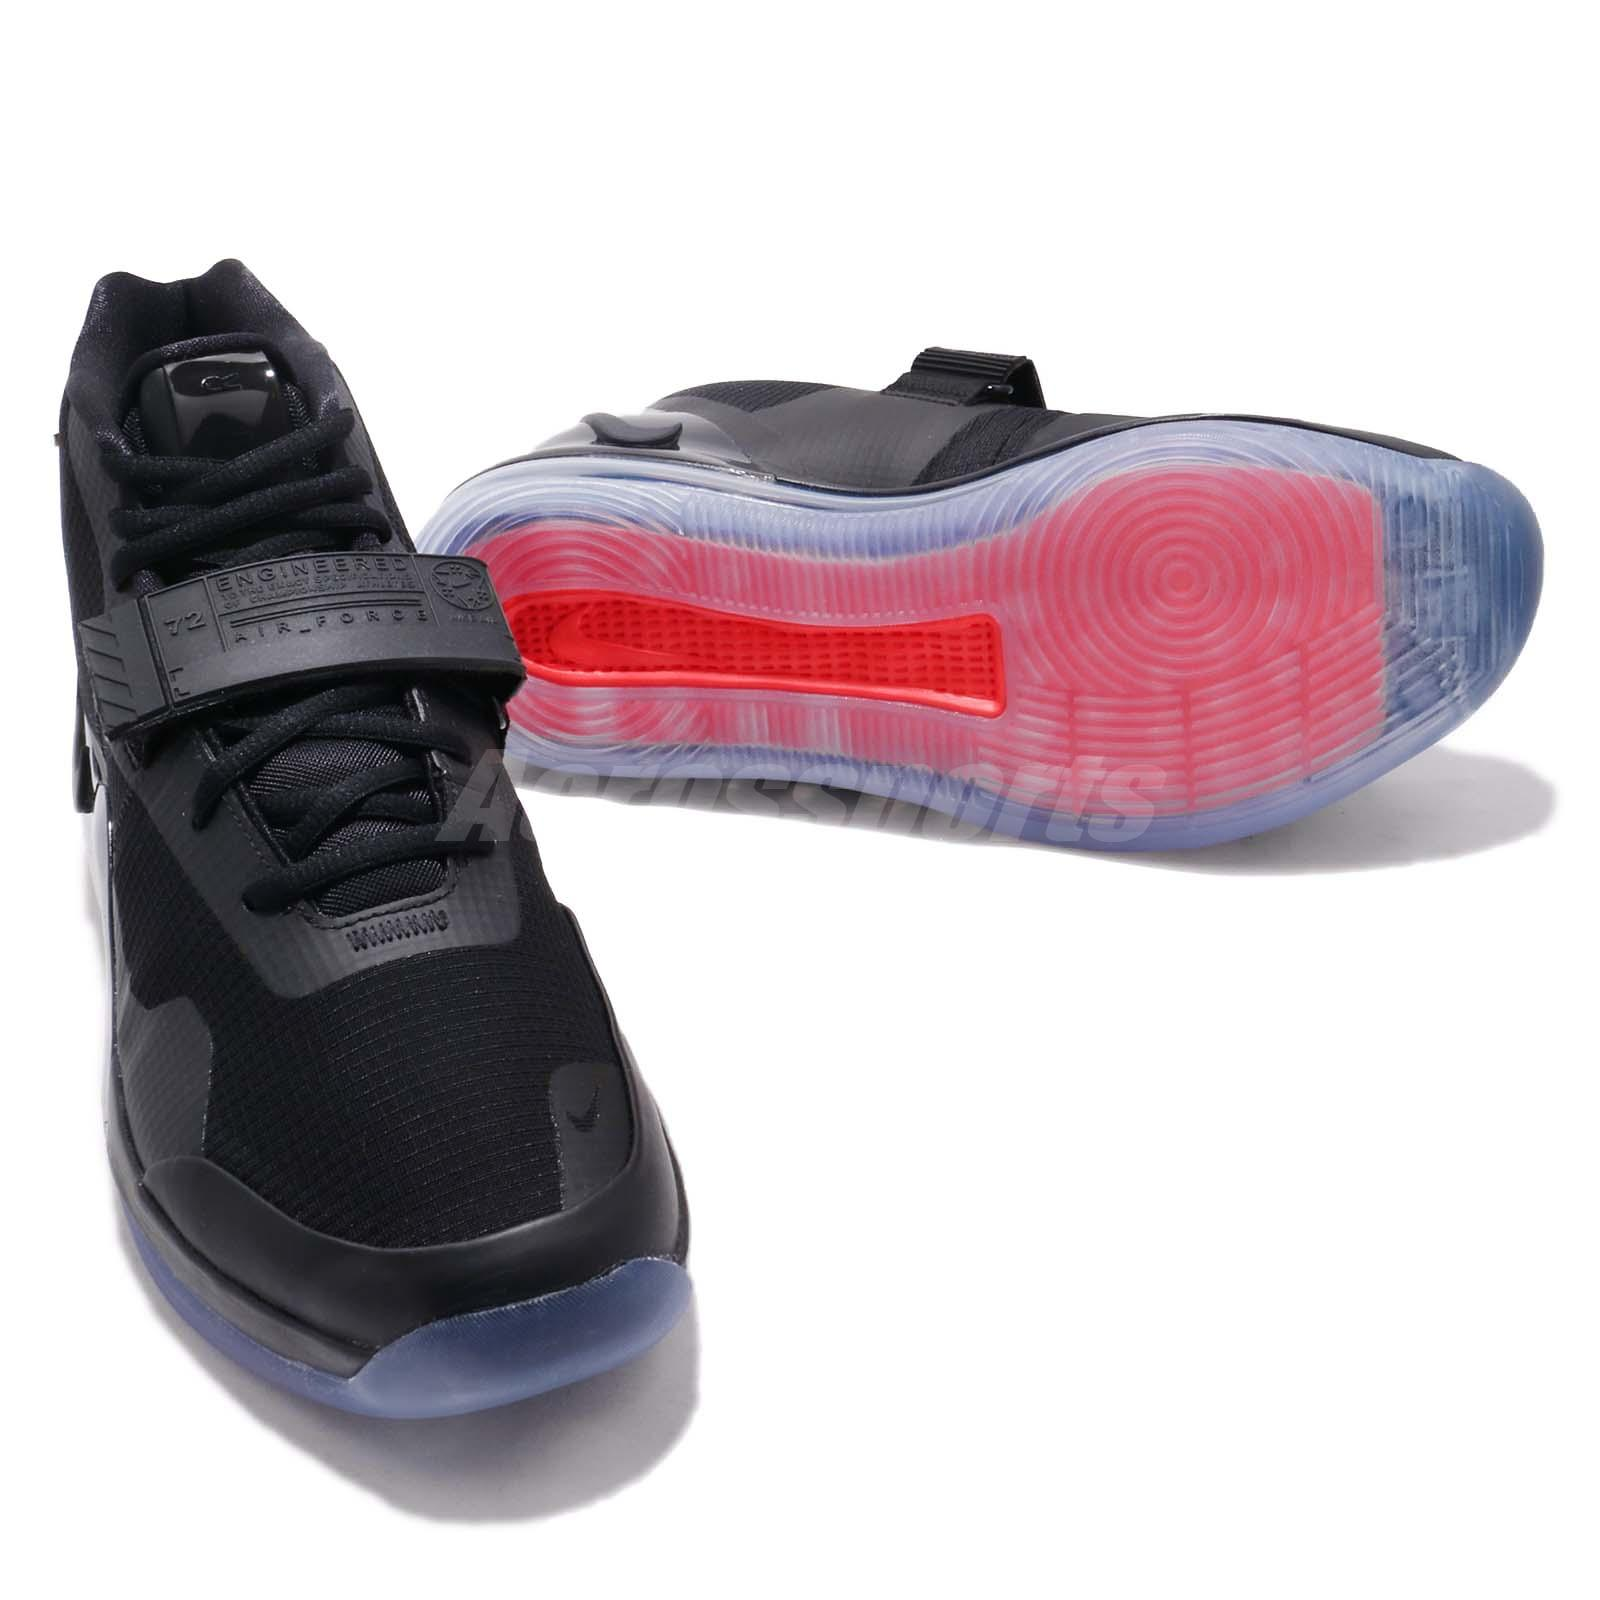 Fashion Style Nike Air Force Max Ep Black Anthracite Men Basketball Shoes Sneakers Ar0975-003 Men's Shoes Clothing, Shoes & Accessories